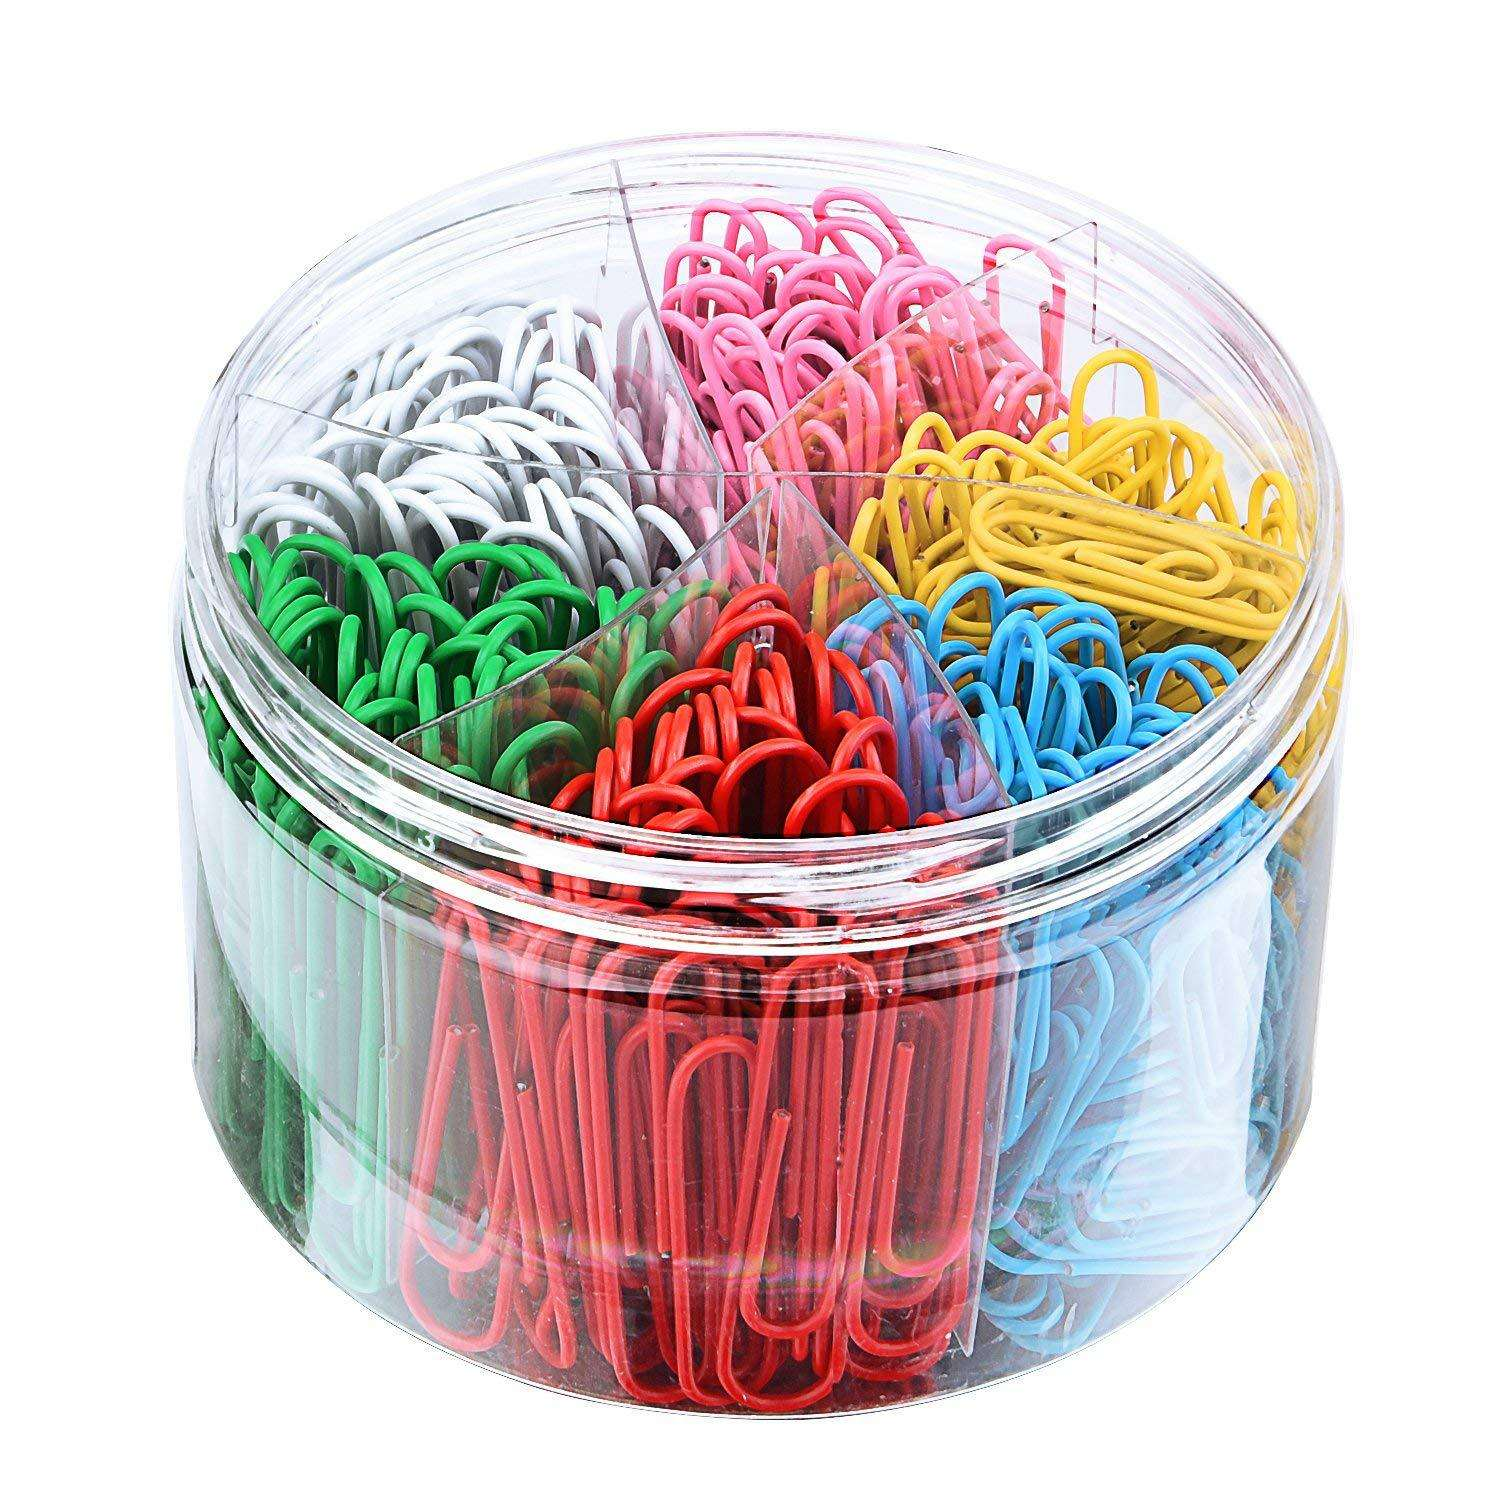 Cross-border exclusively for plastic-coated colored paper clips, multi-specification mixed metal silver paper clips